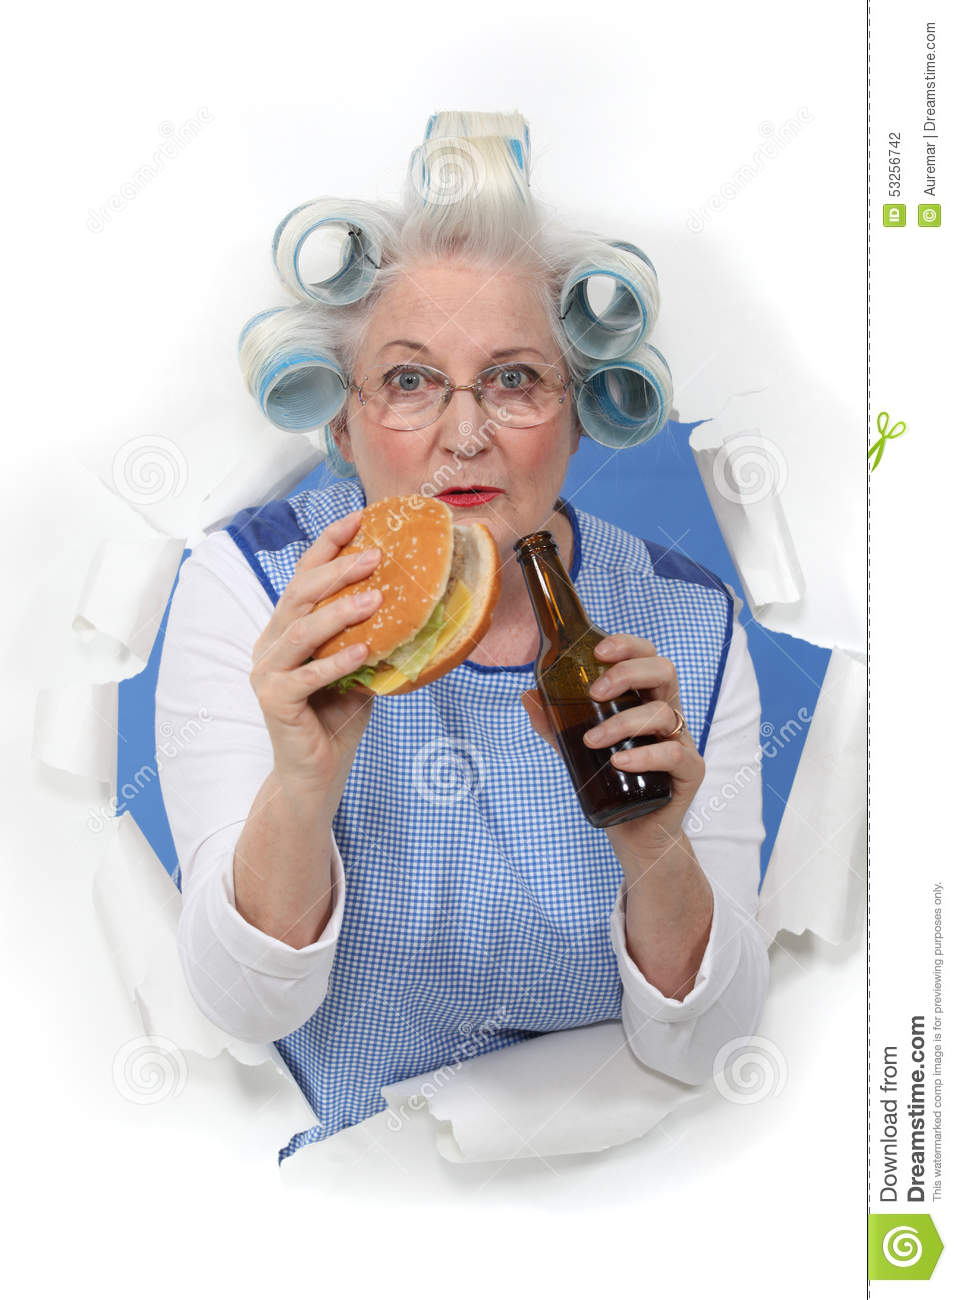 Elderly Woman With Hair Rollers Stock Photo Image 53256742